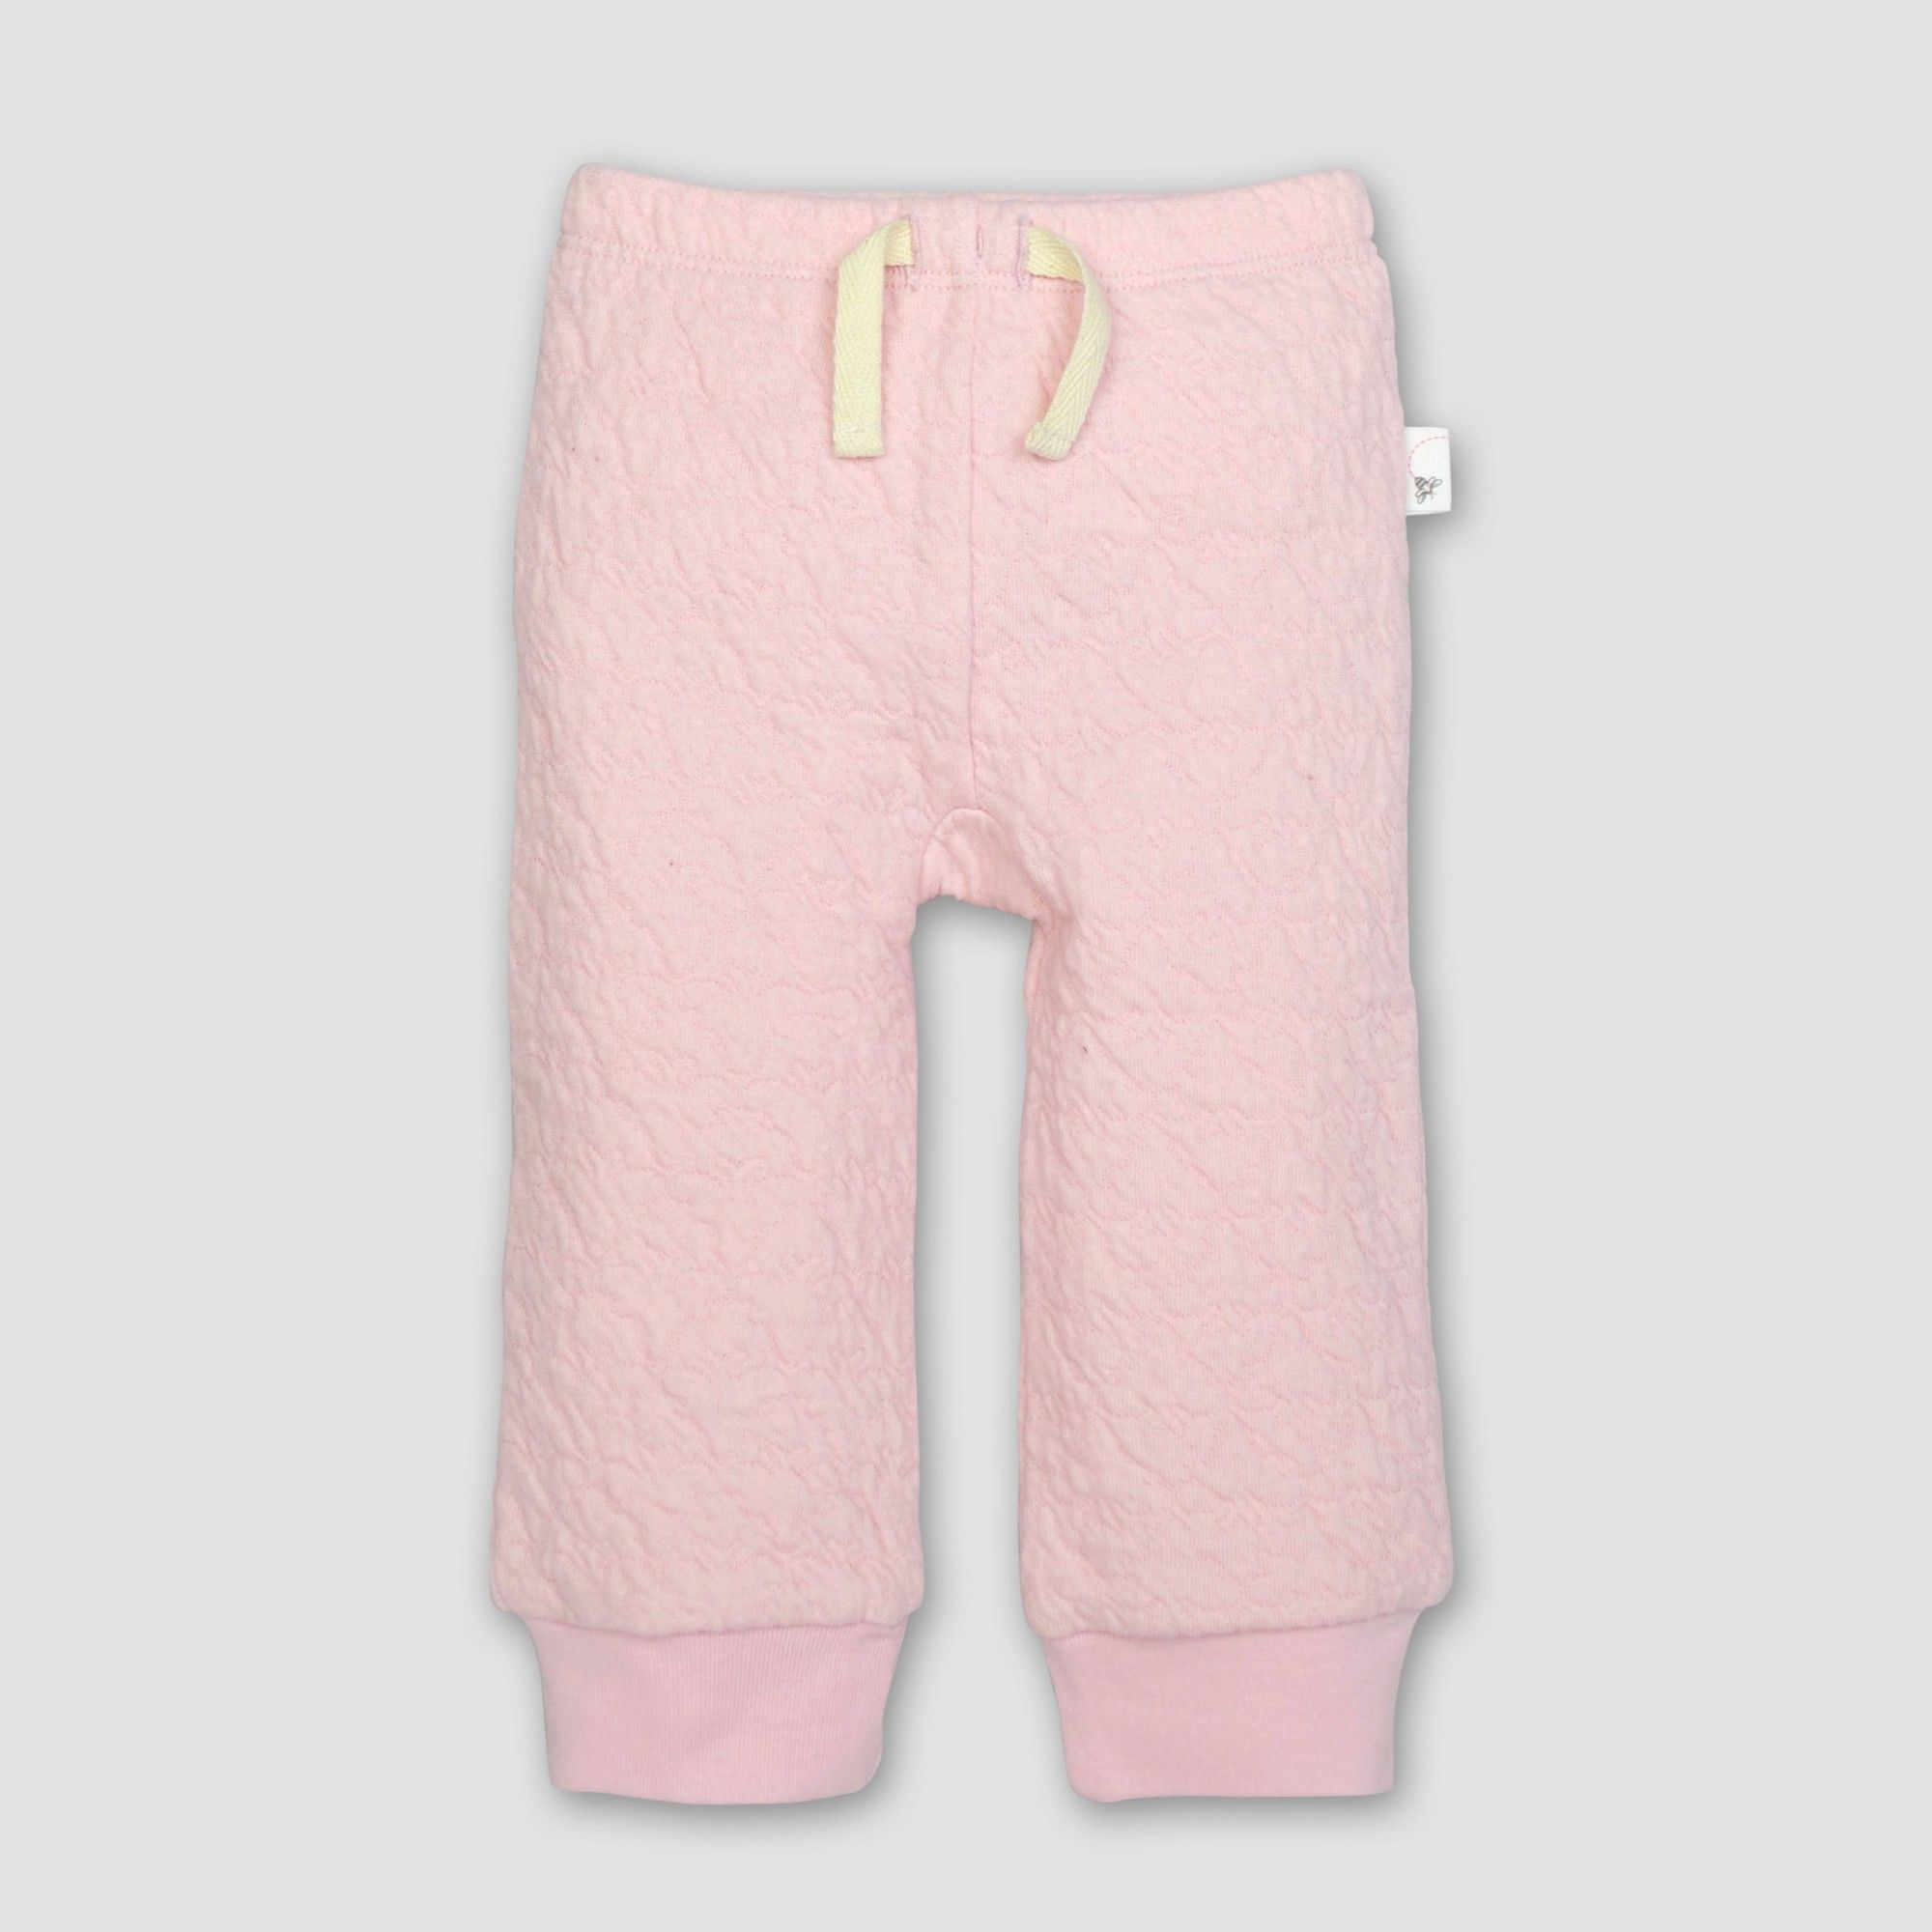 f5400f36e Burt's Bees Baby Girls' Organic Cotton Quilted Bee Pants - Blossom 24M, Pink